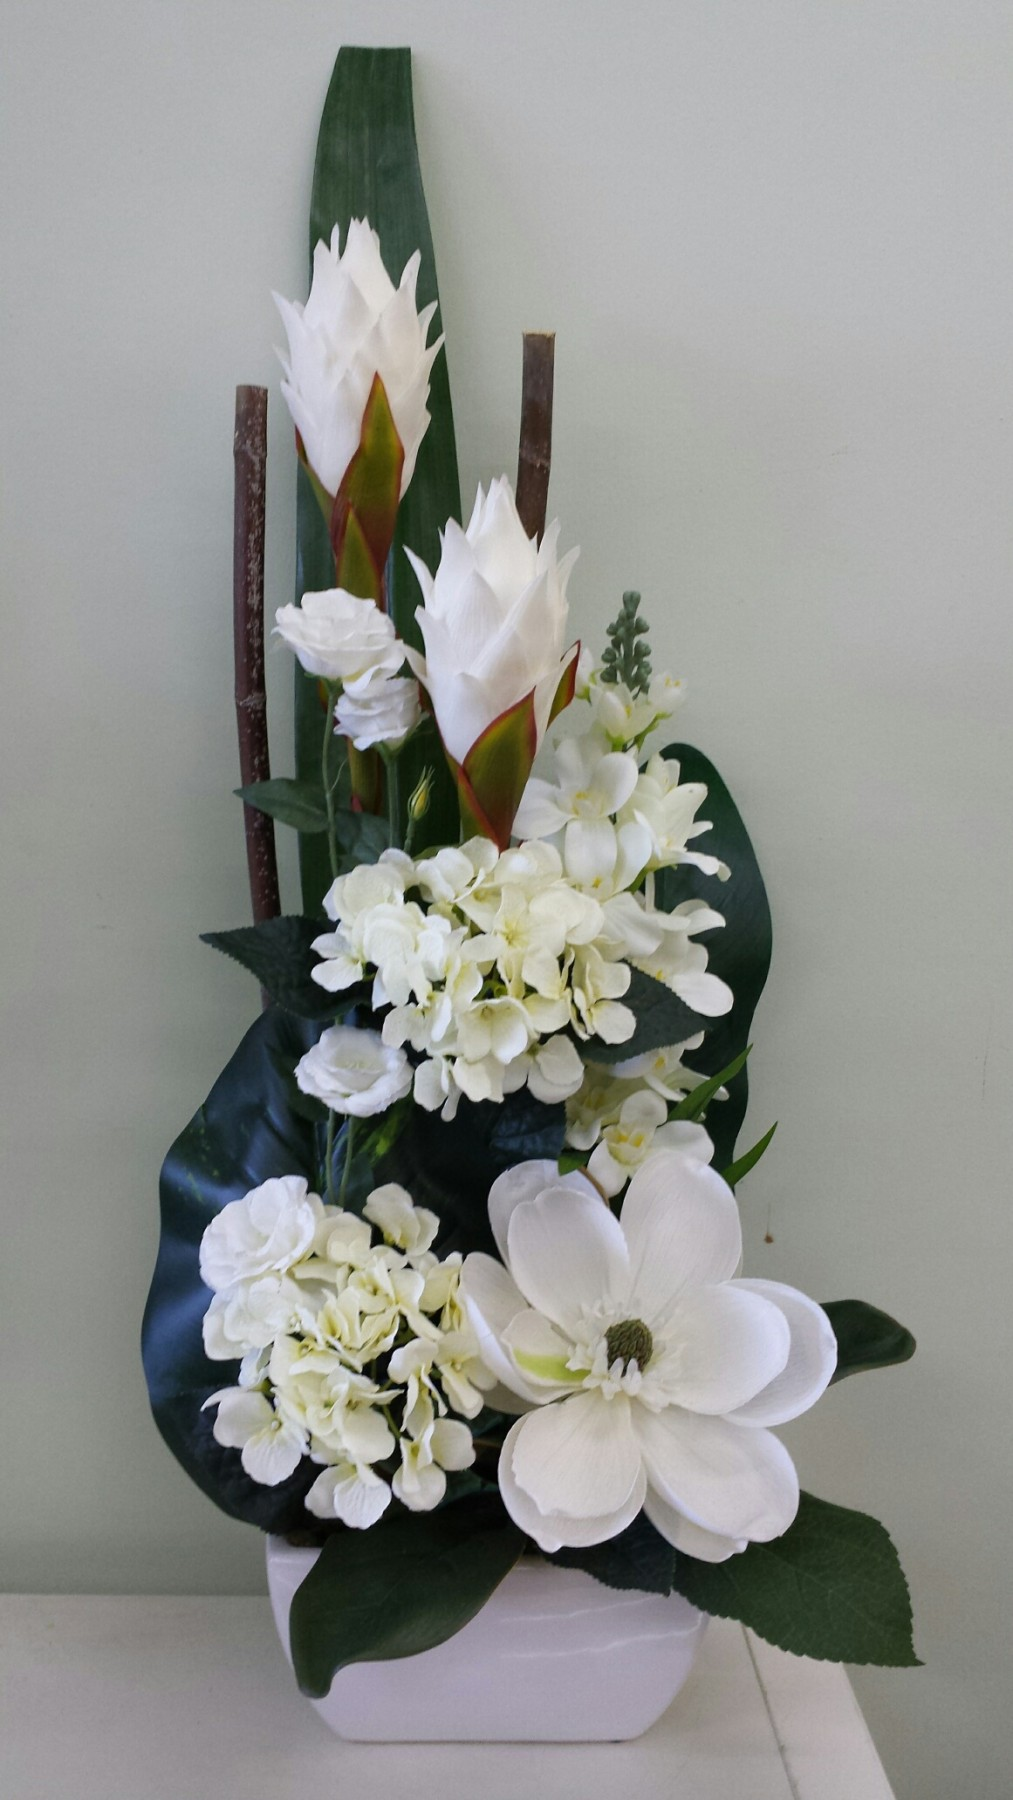 Artificial Flower Baskets Online : Artificial flowers adelaide hills delivery